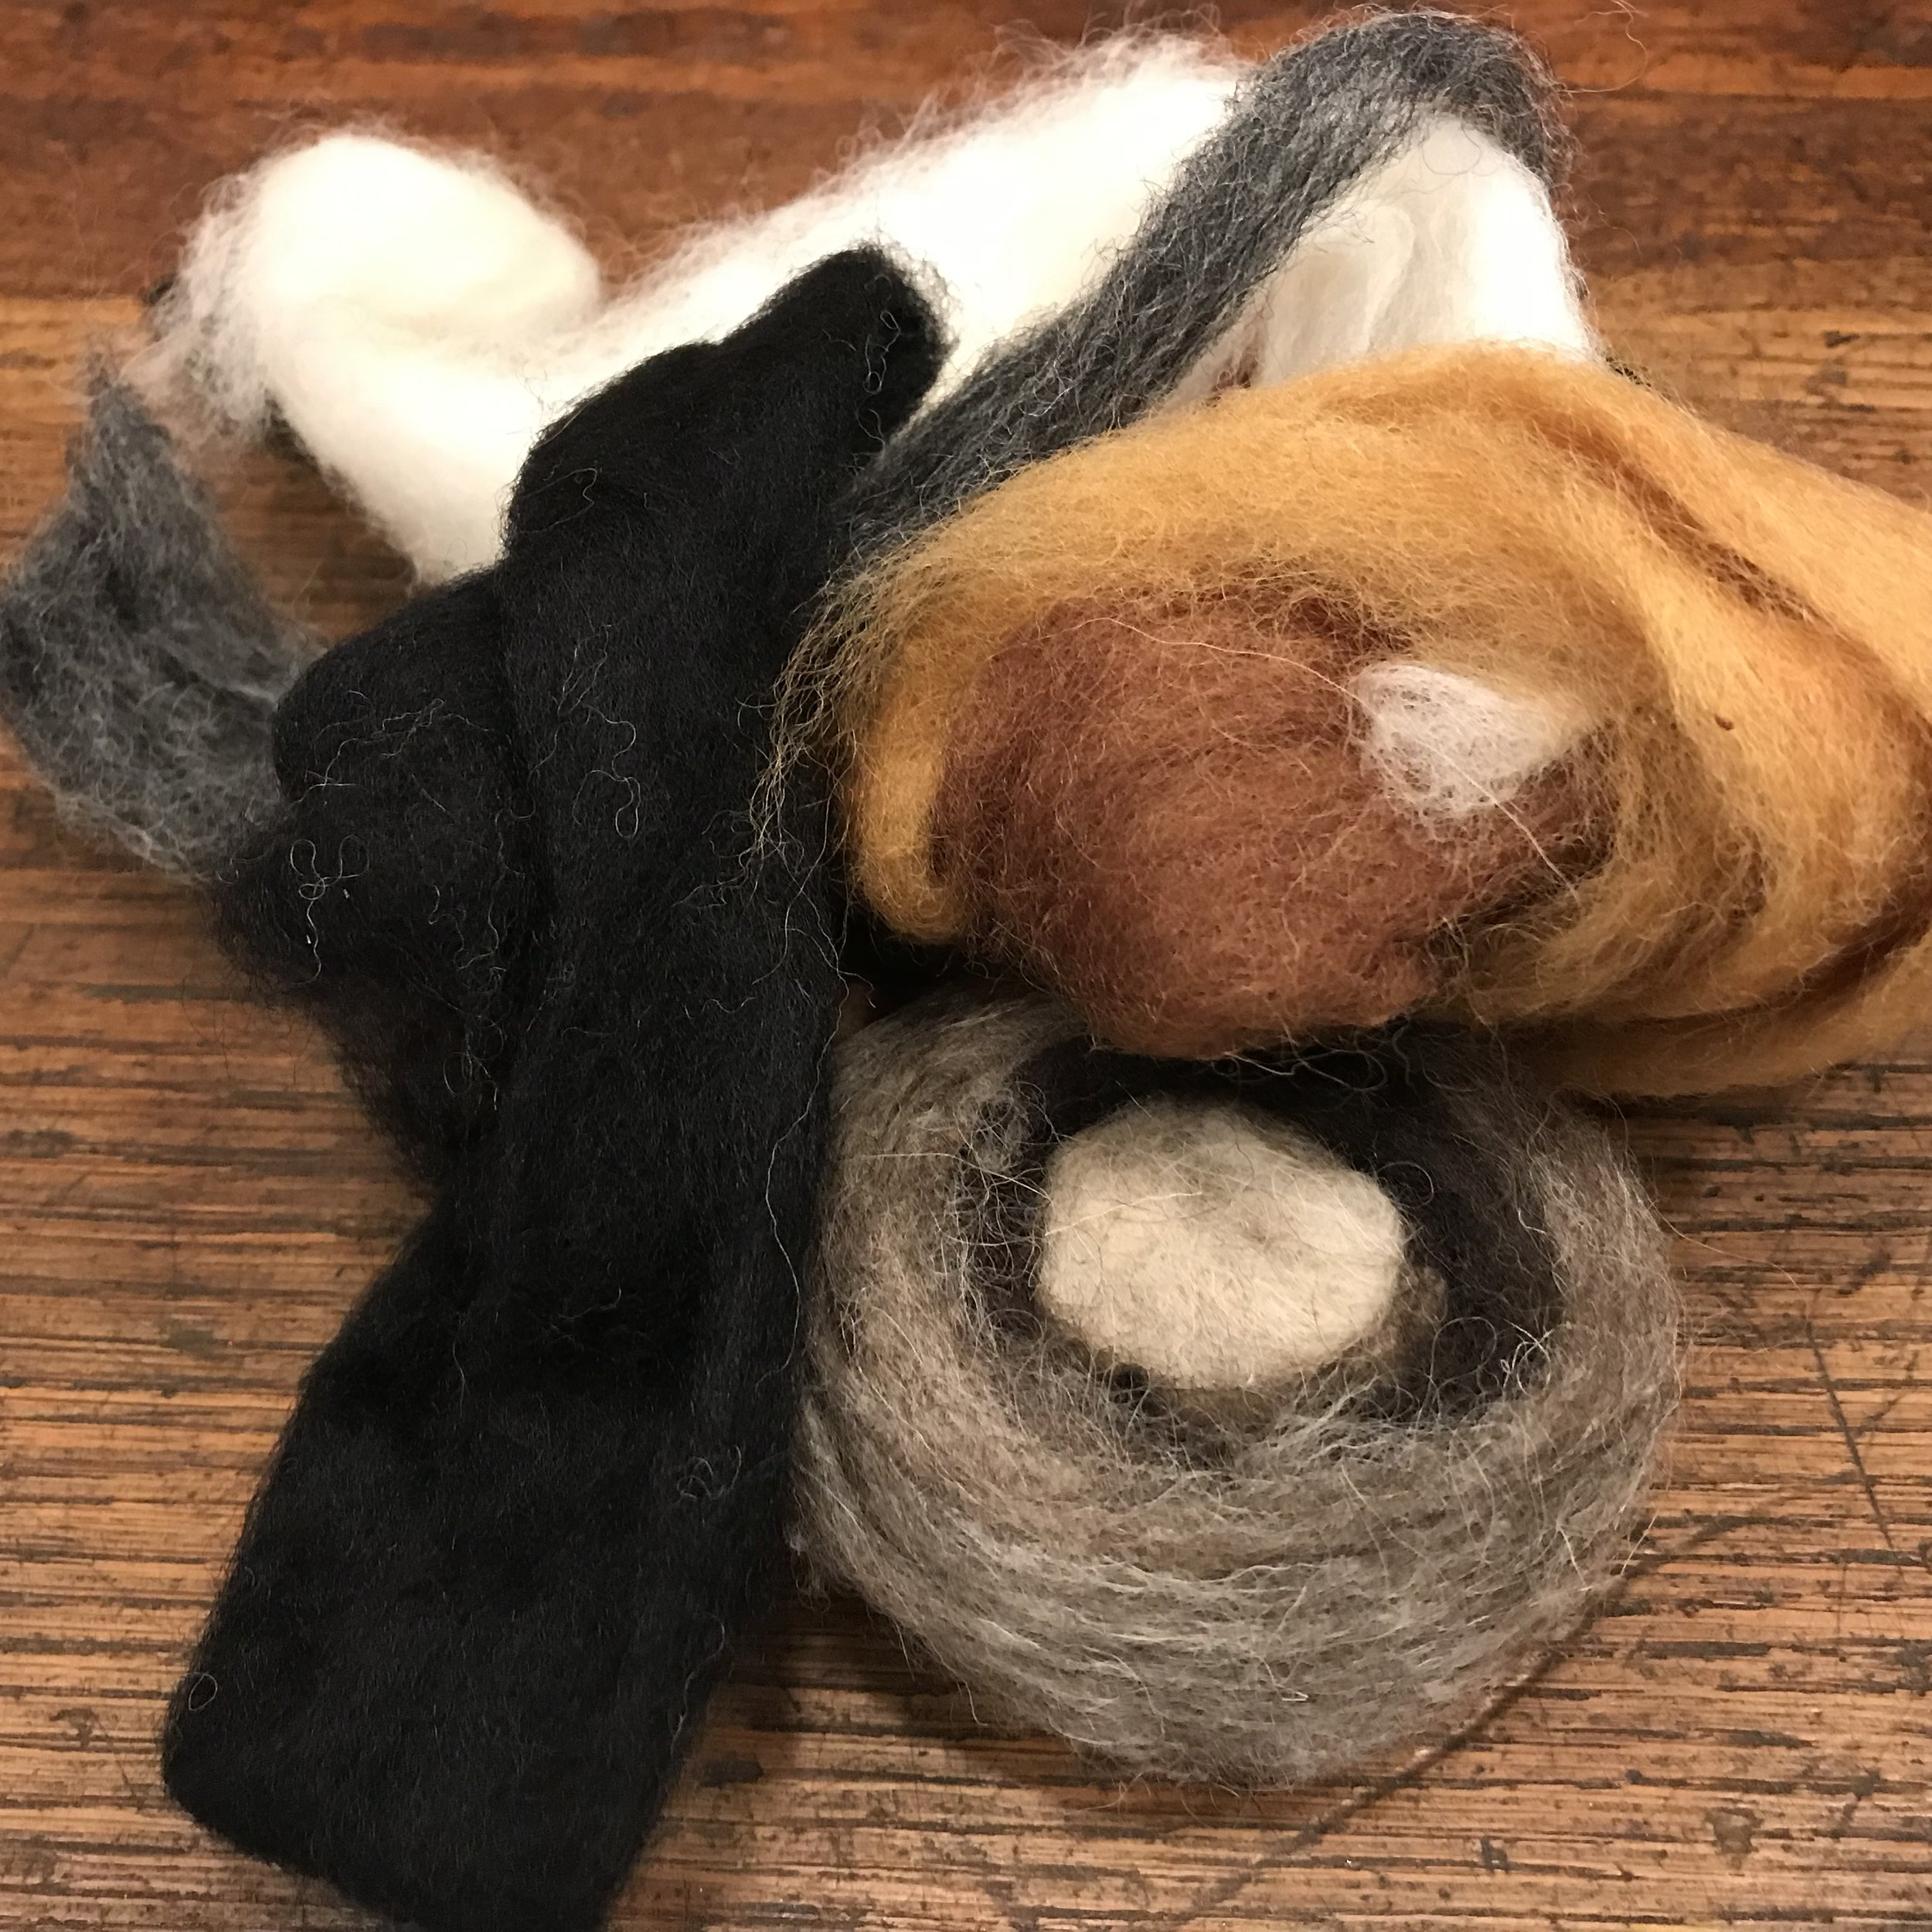 - Choose from many natural hues of wool roving to wrap around your lavender soap. The wool serves as an exfoliator and keeps the bar from getting slippery (or slimy).